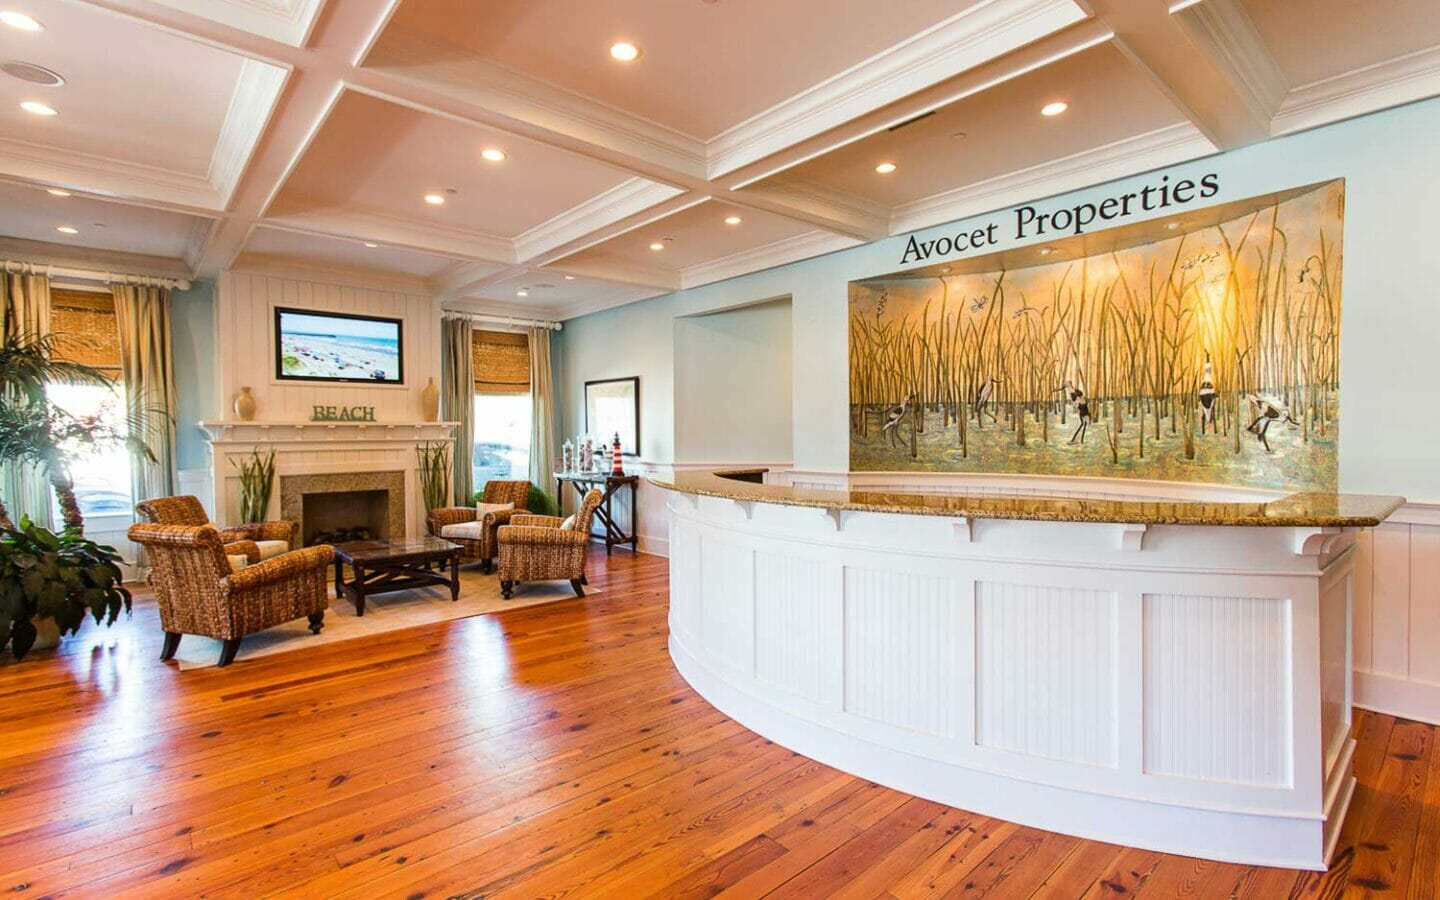 front desk in lobby of Avocet Properties with a sitting area beside a fireplace